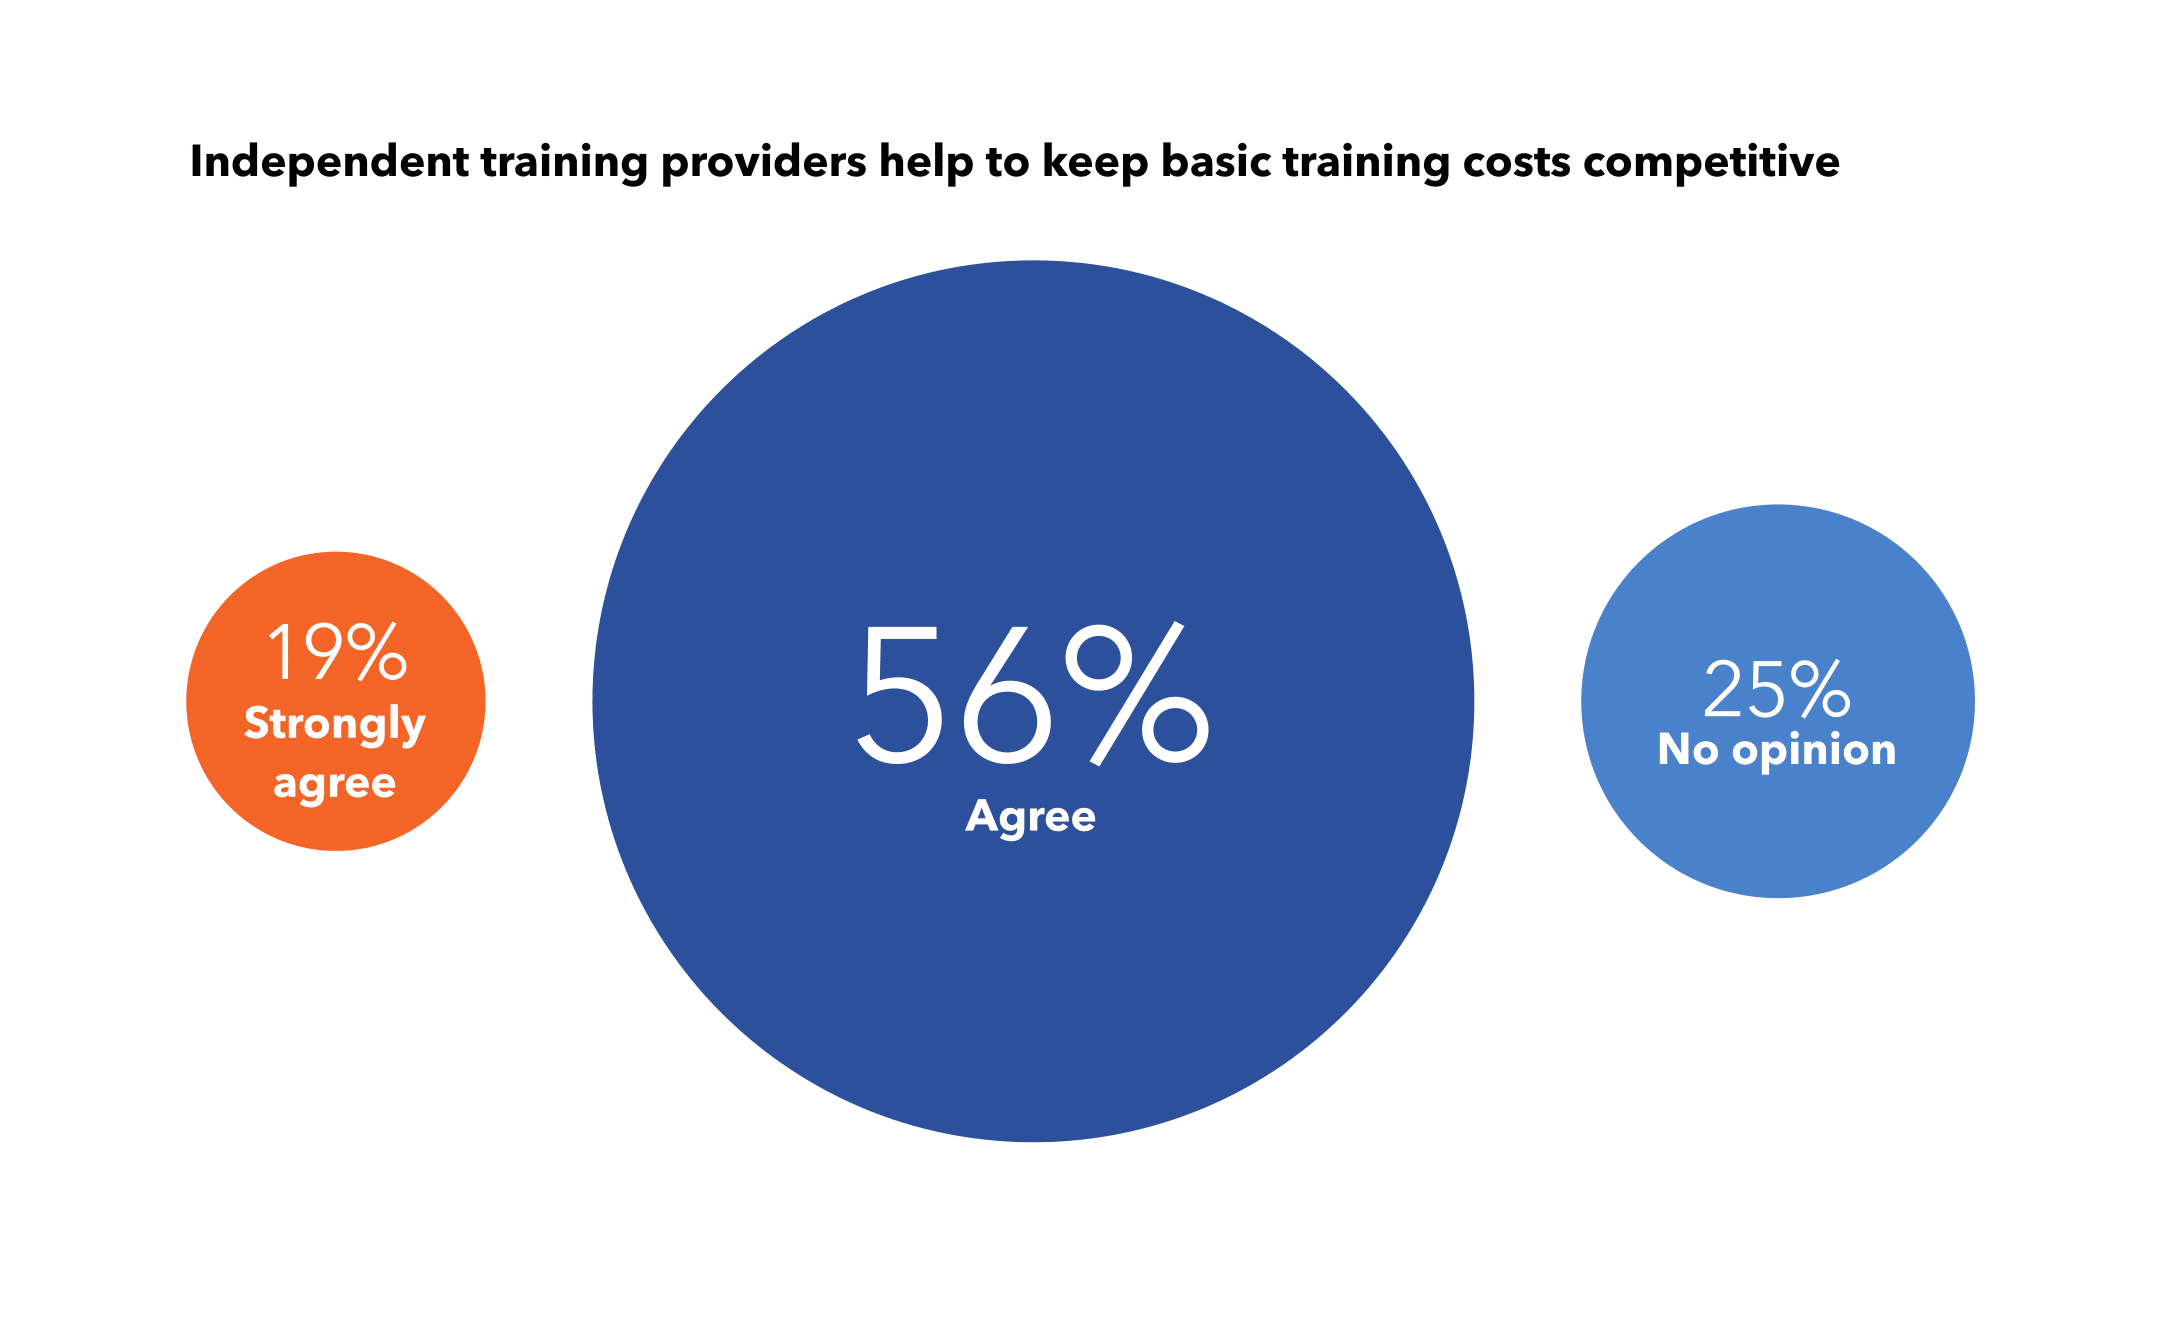 Independent training providers keep costs competitive for wind energy companies